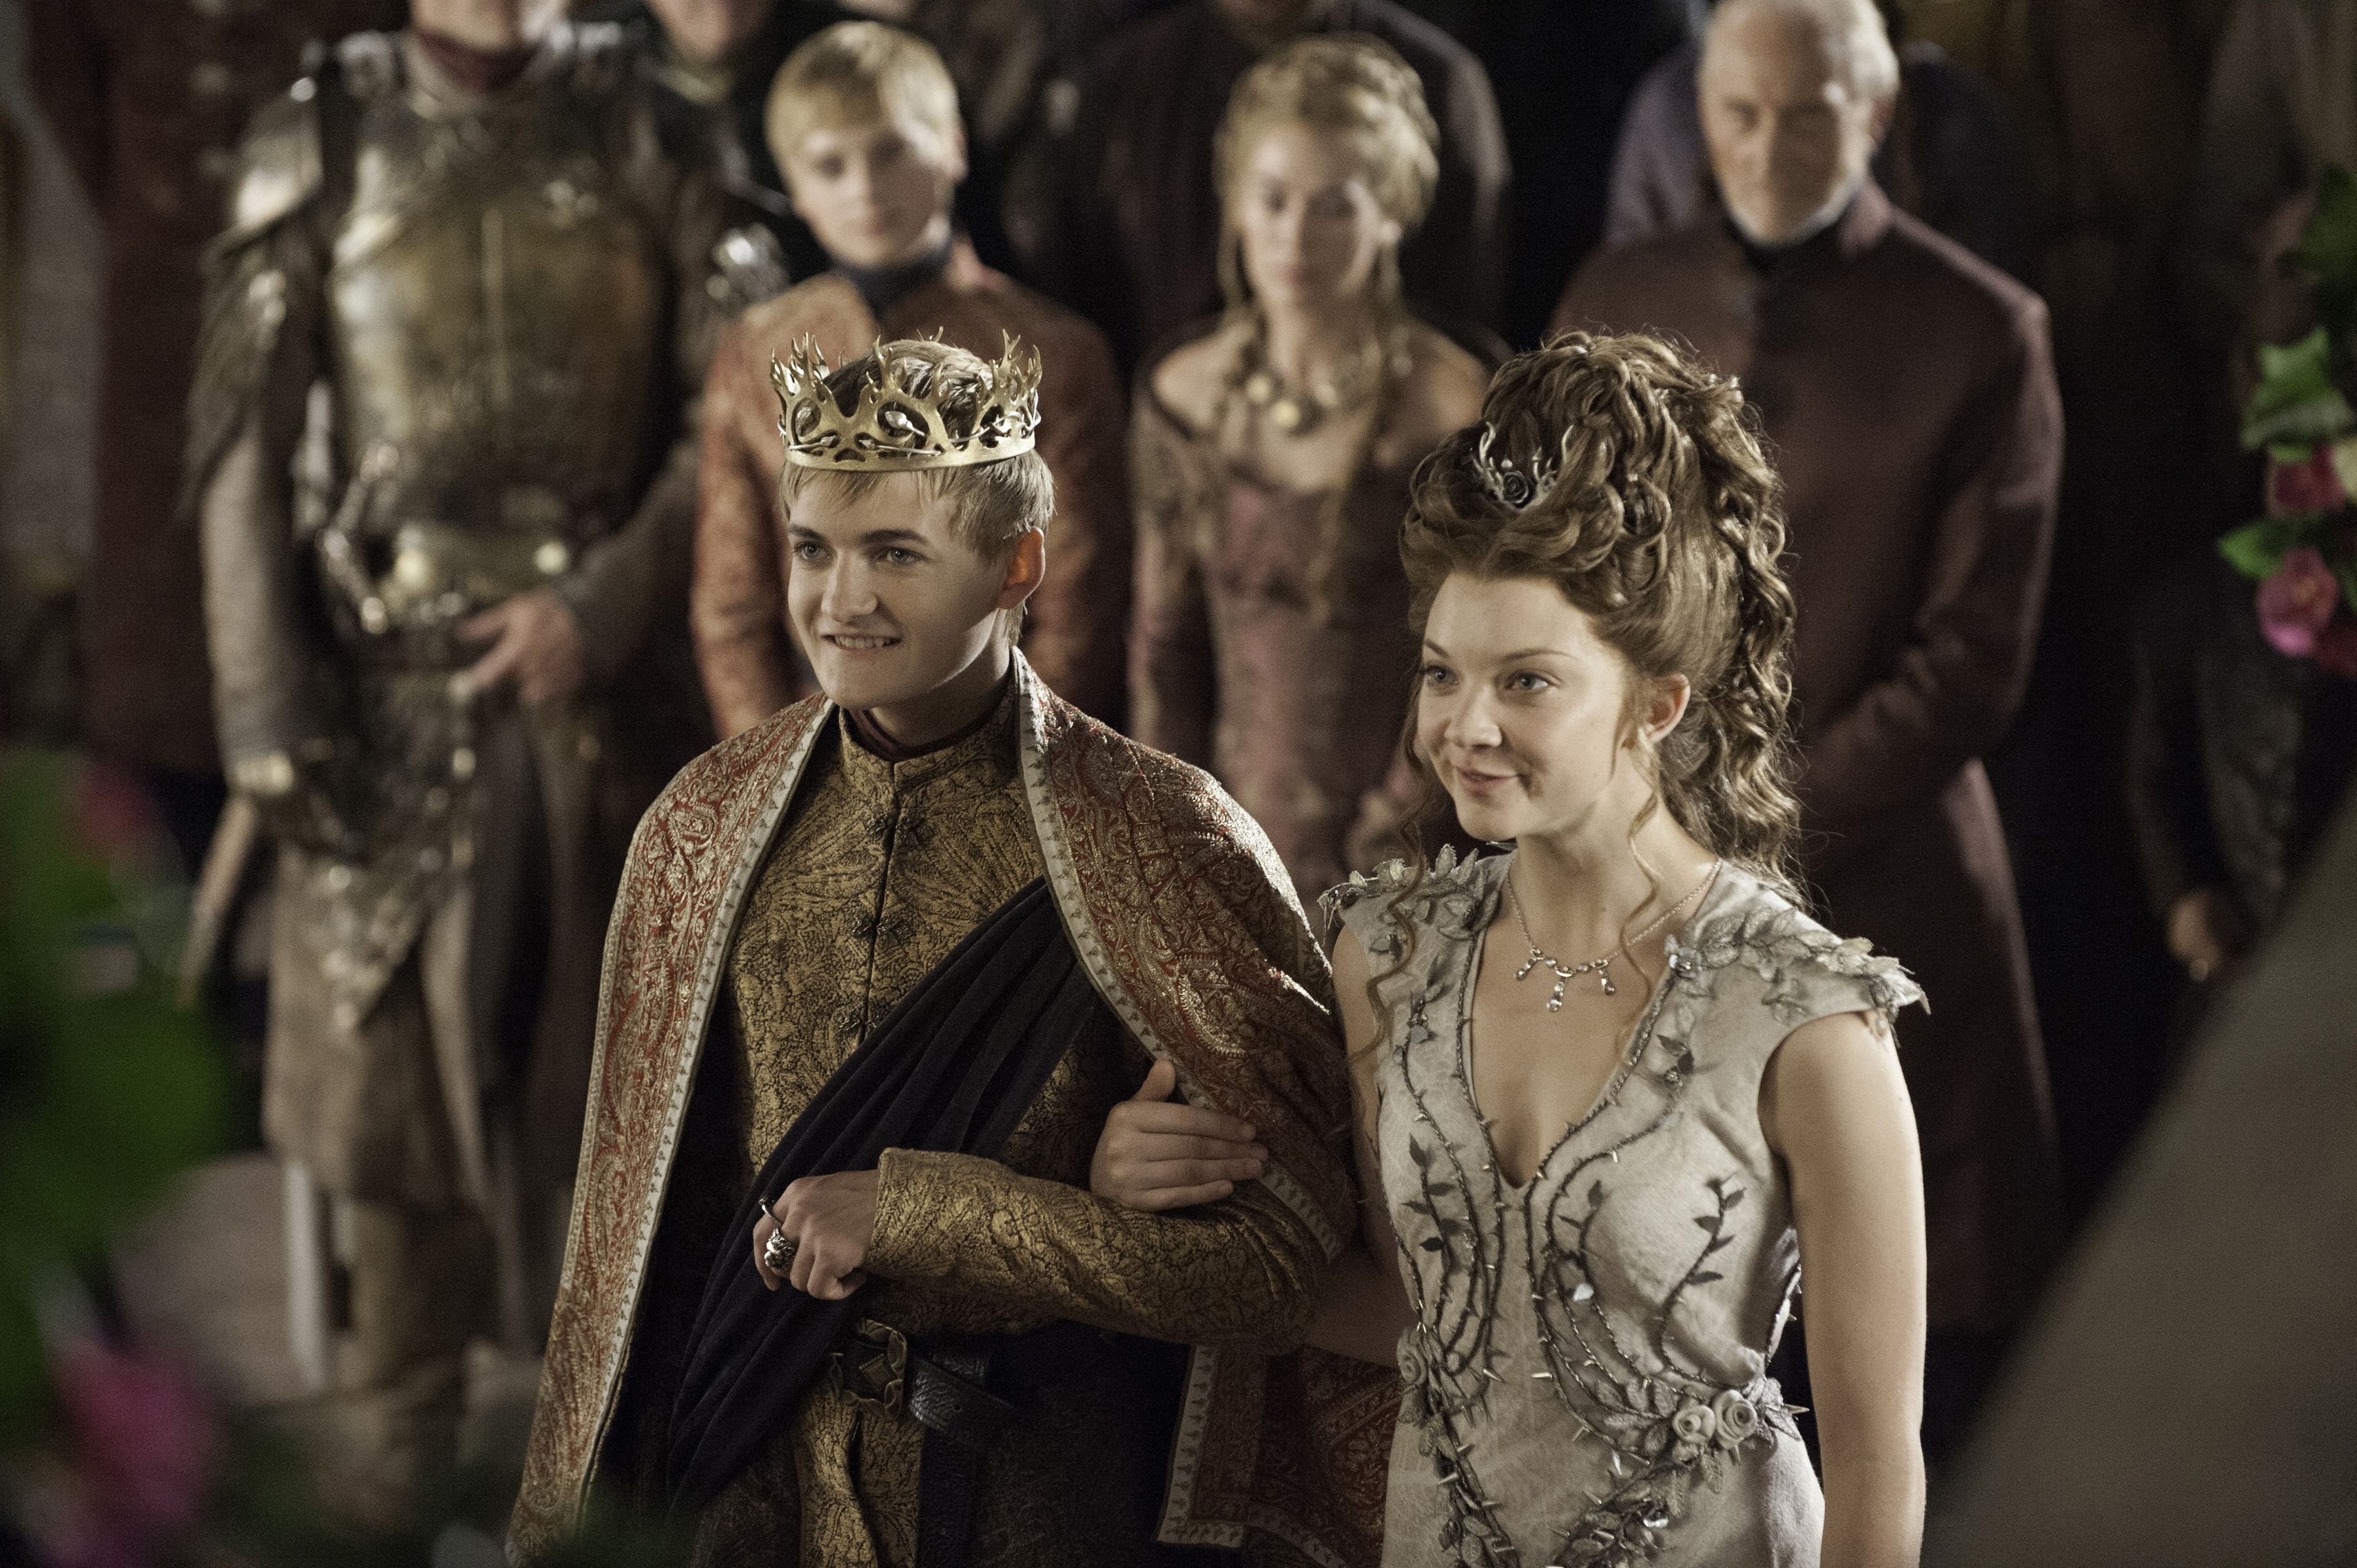 From left: Jack Gleeson as Joffrey Baratheon and Natalie Dormer as Margaery Tyrell in Season 4, Episode 2 of HBO's Game of Thrones.